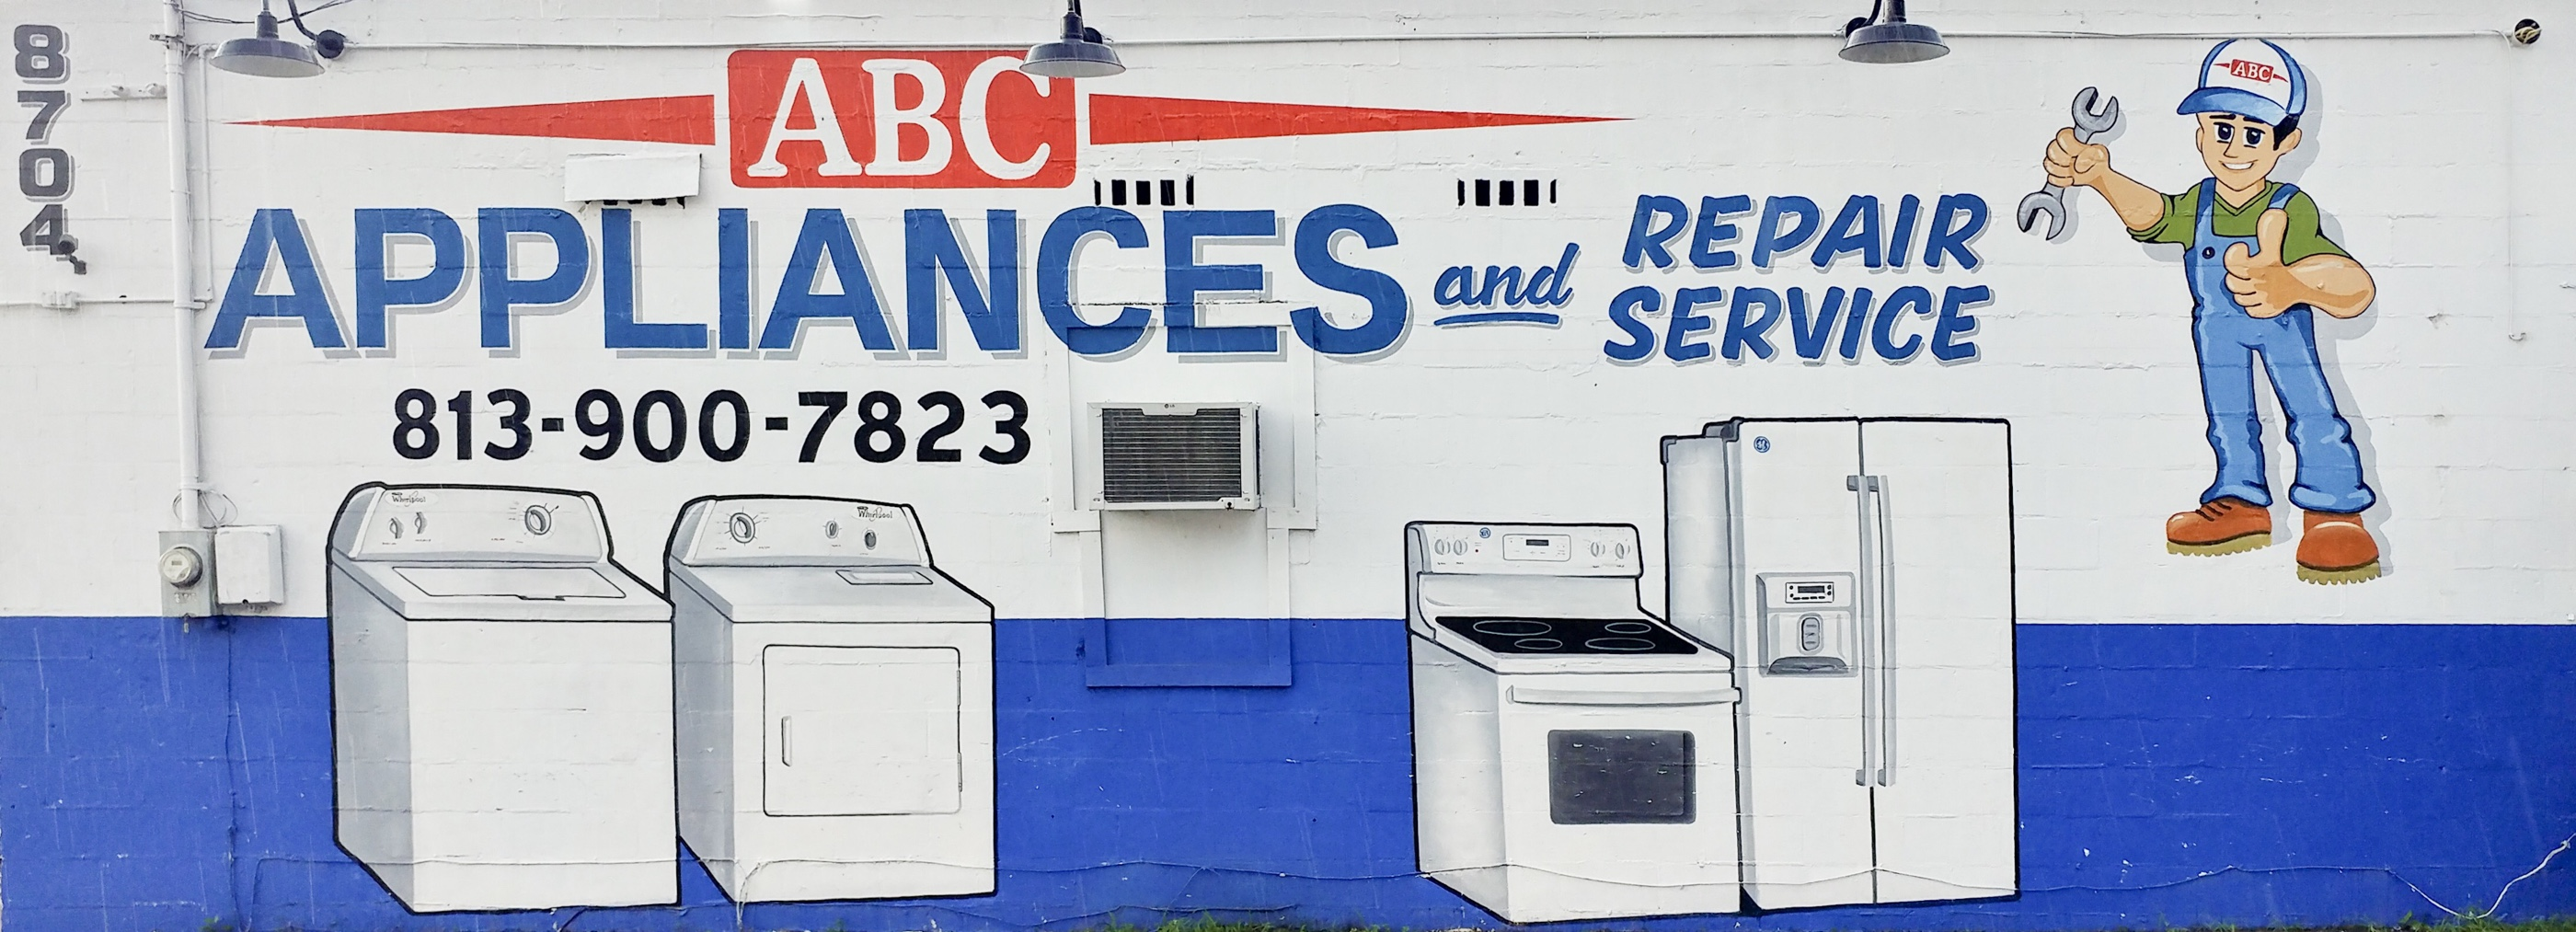 Daily Appliance Deals In Tampa Fl